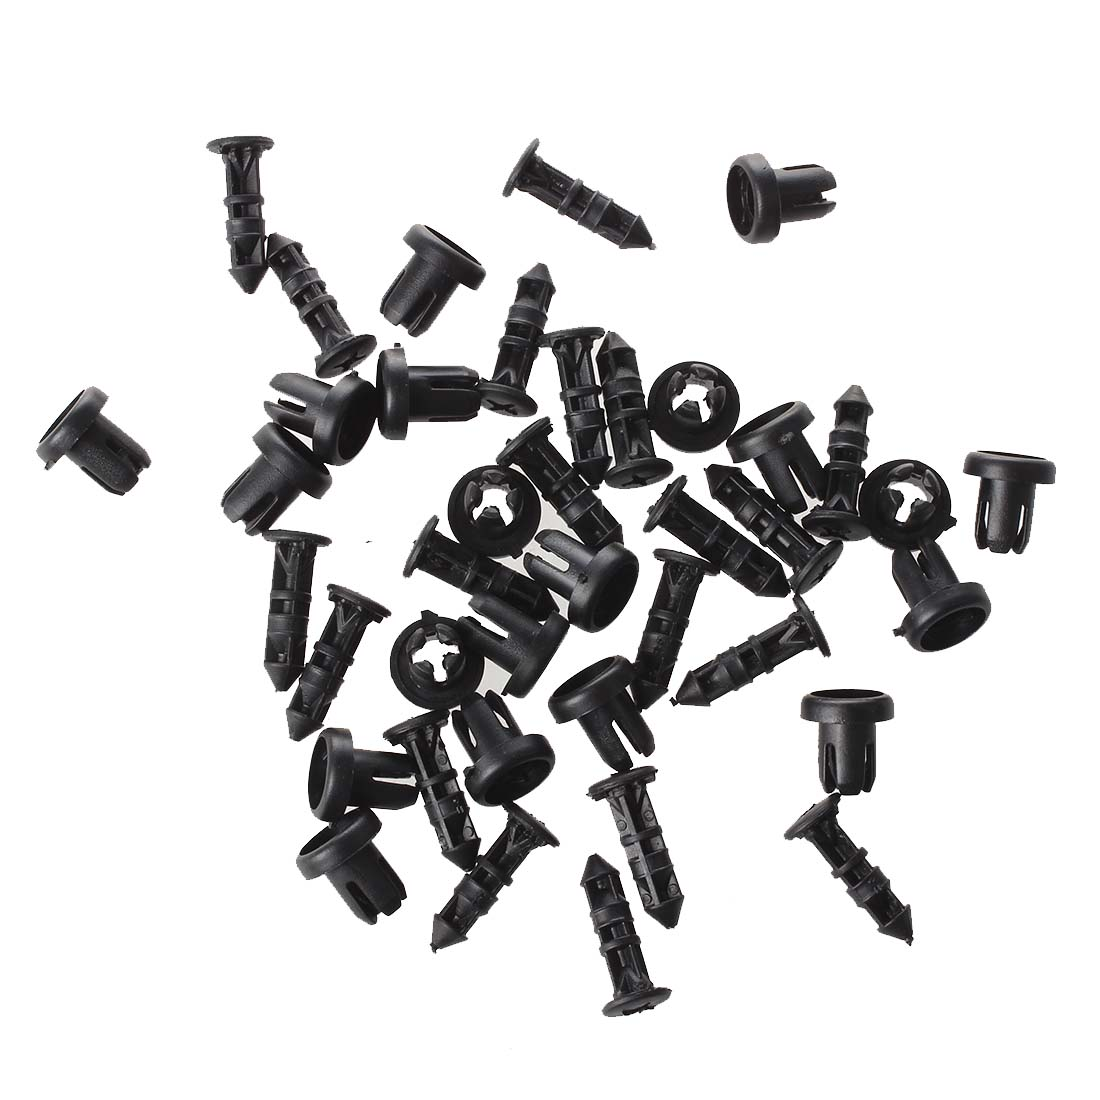 dsha new hot 20 pcs 9mm hole push in expanding screw panel clips Automotive Push Fasteners aeproduct getsubject